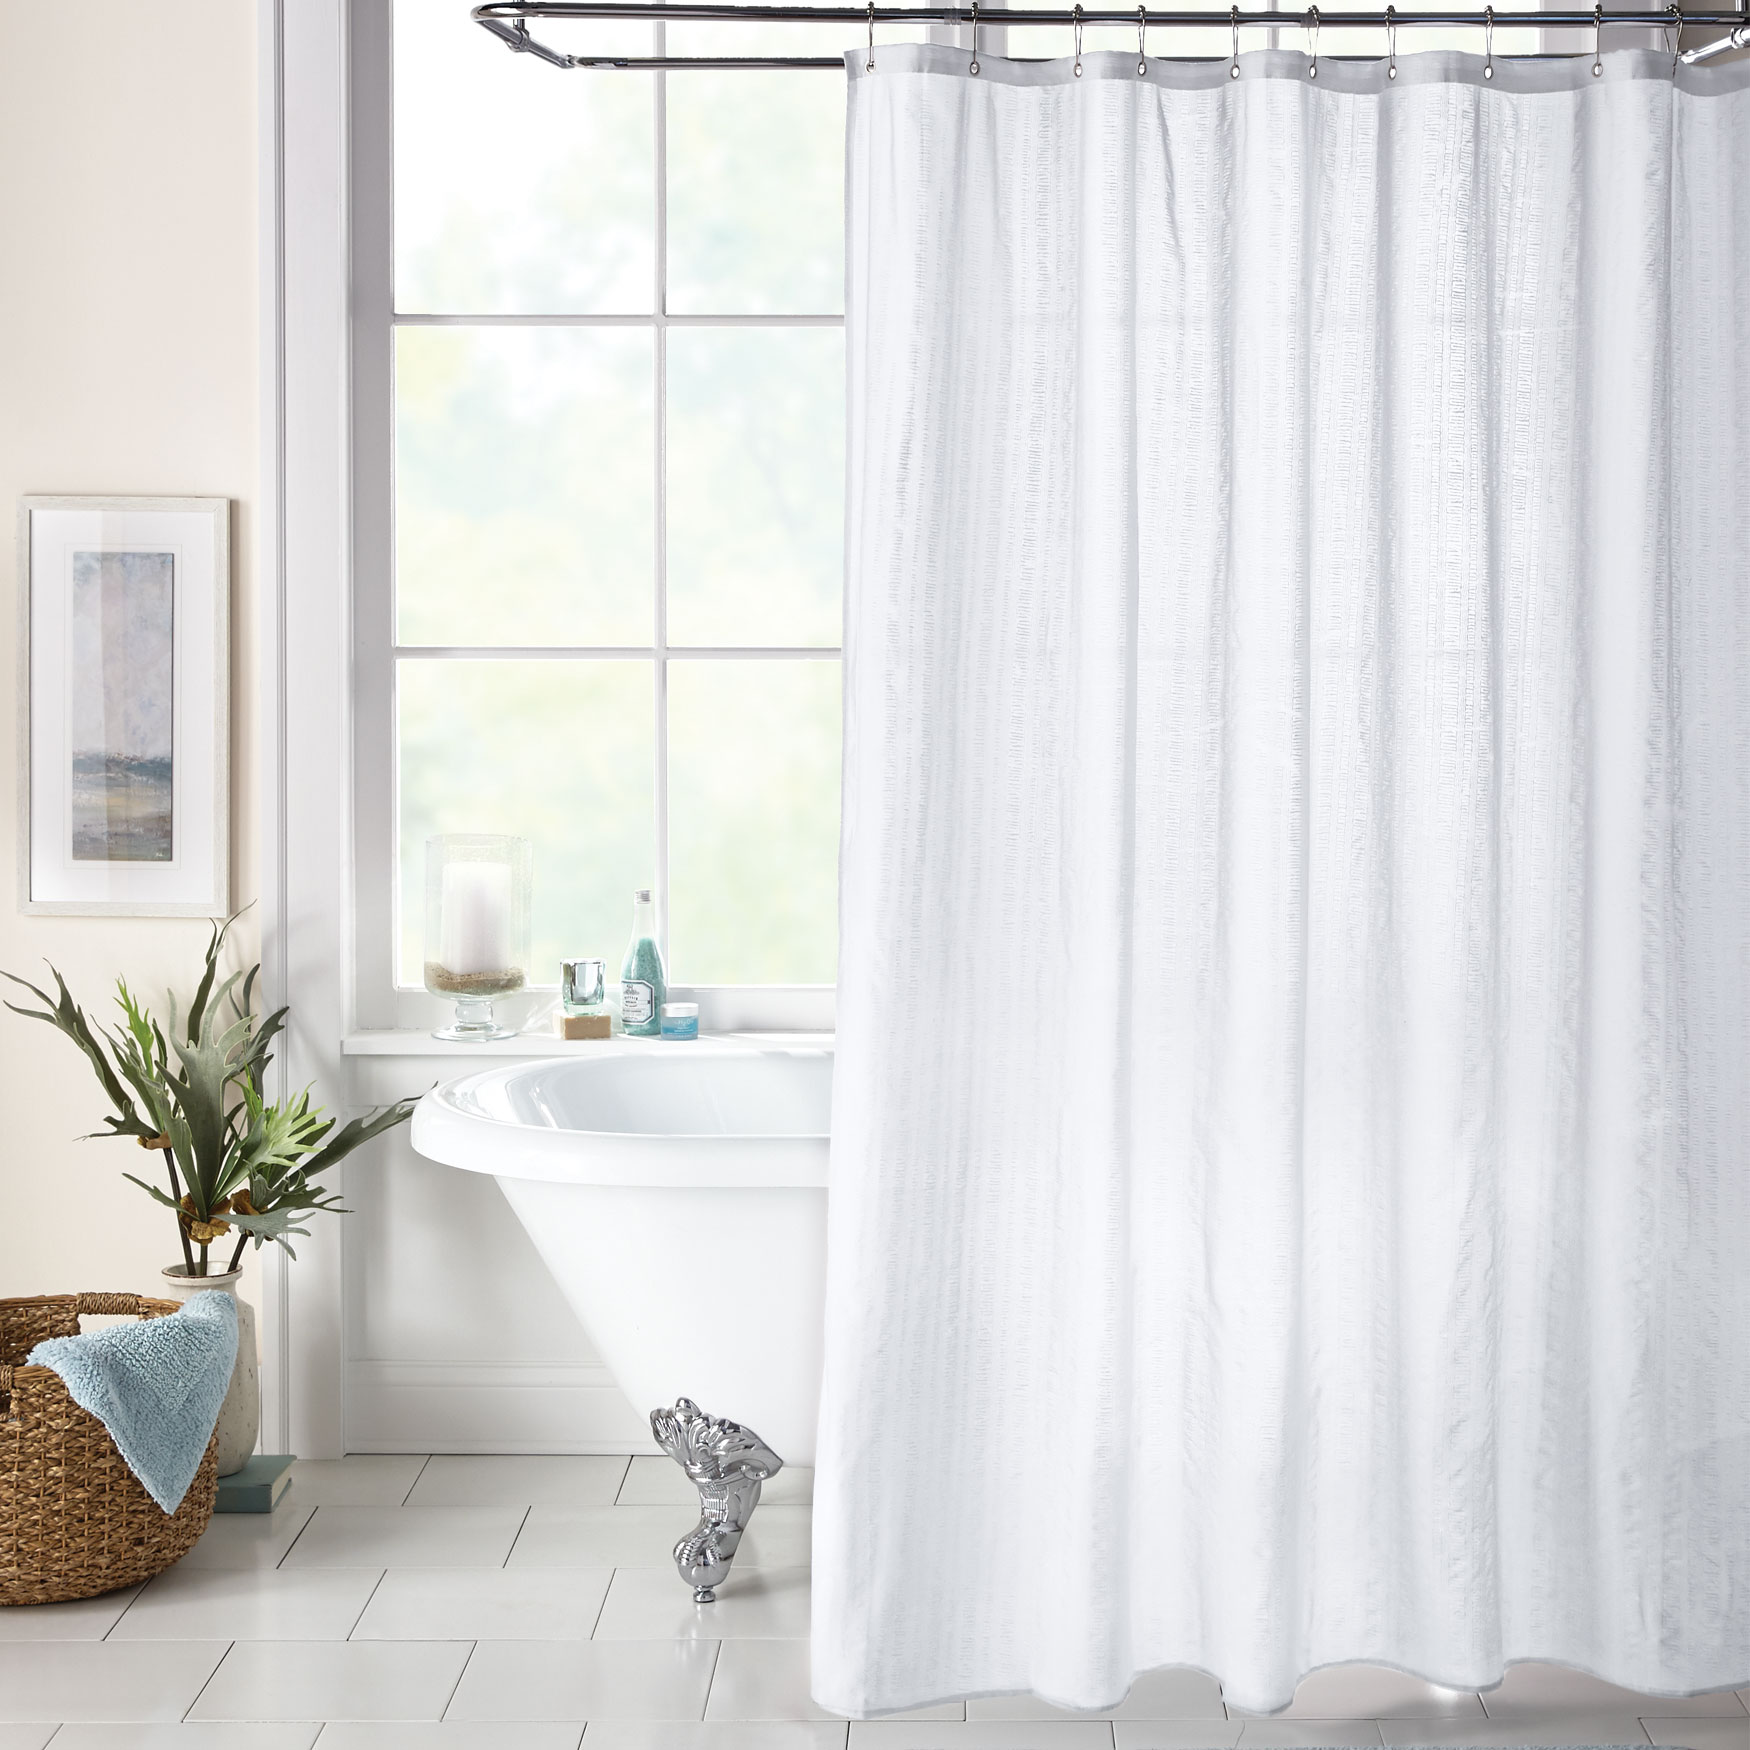 BH Studio Textured Shower Curtain, WHITE